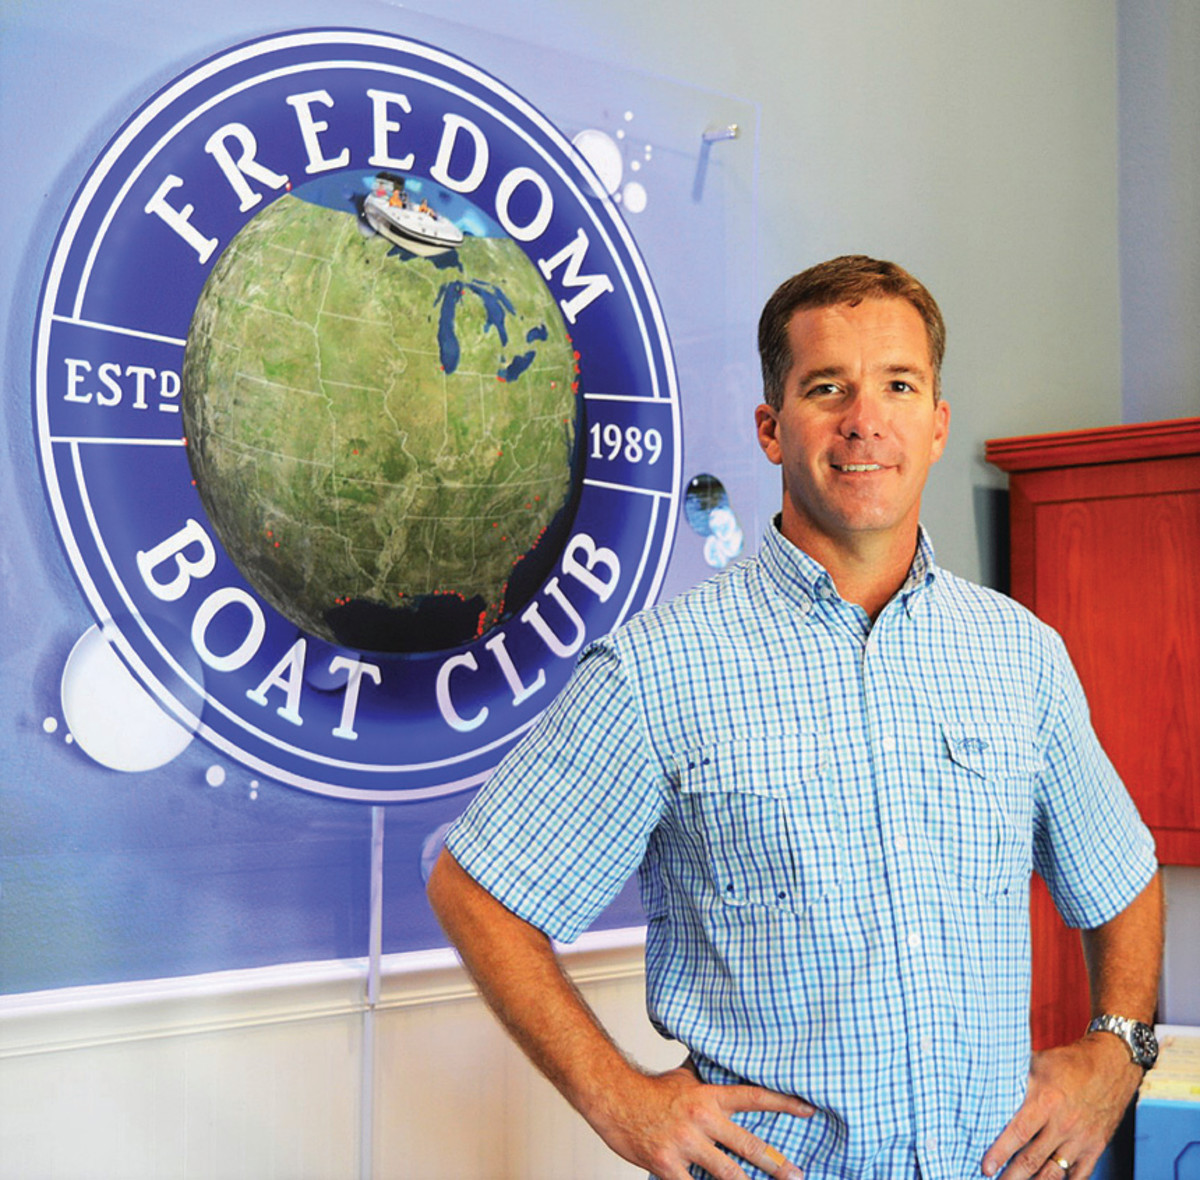 1 Freedom Boat Club - Trade Only Today